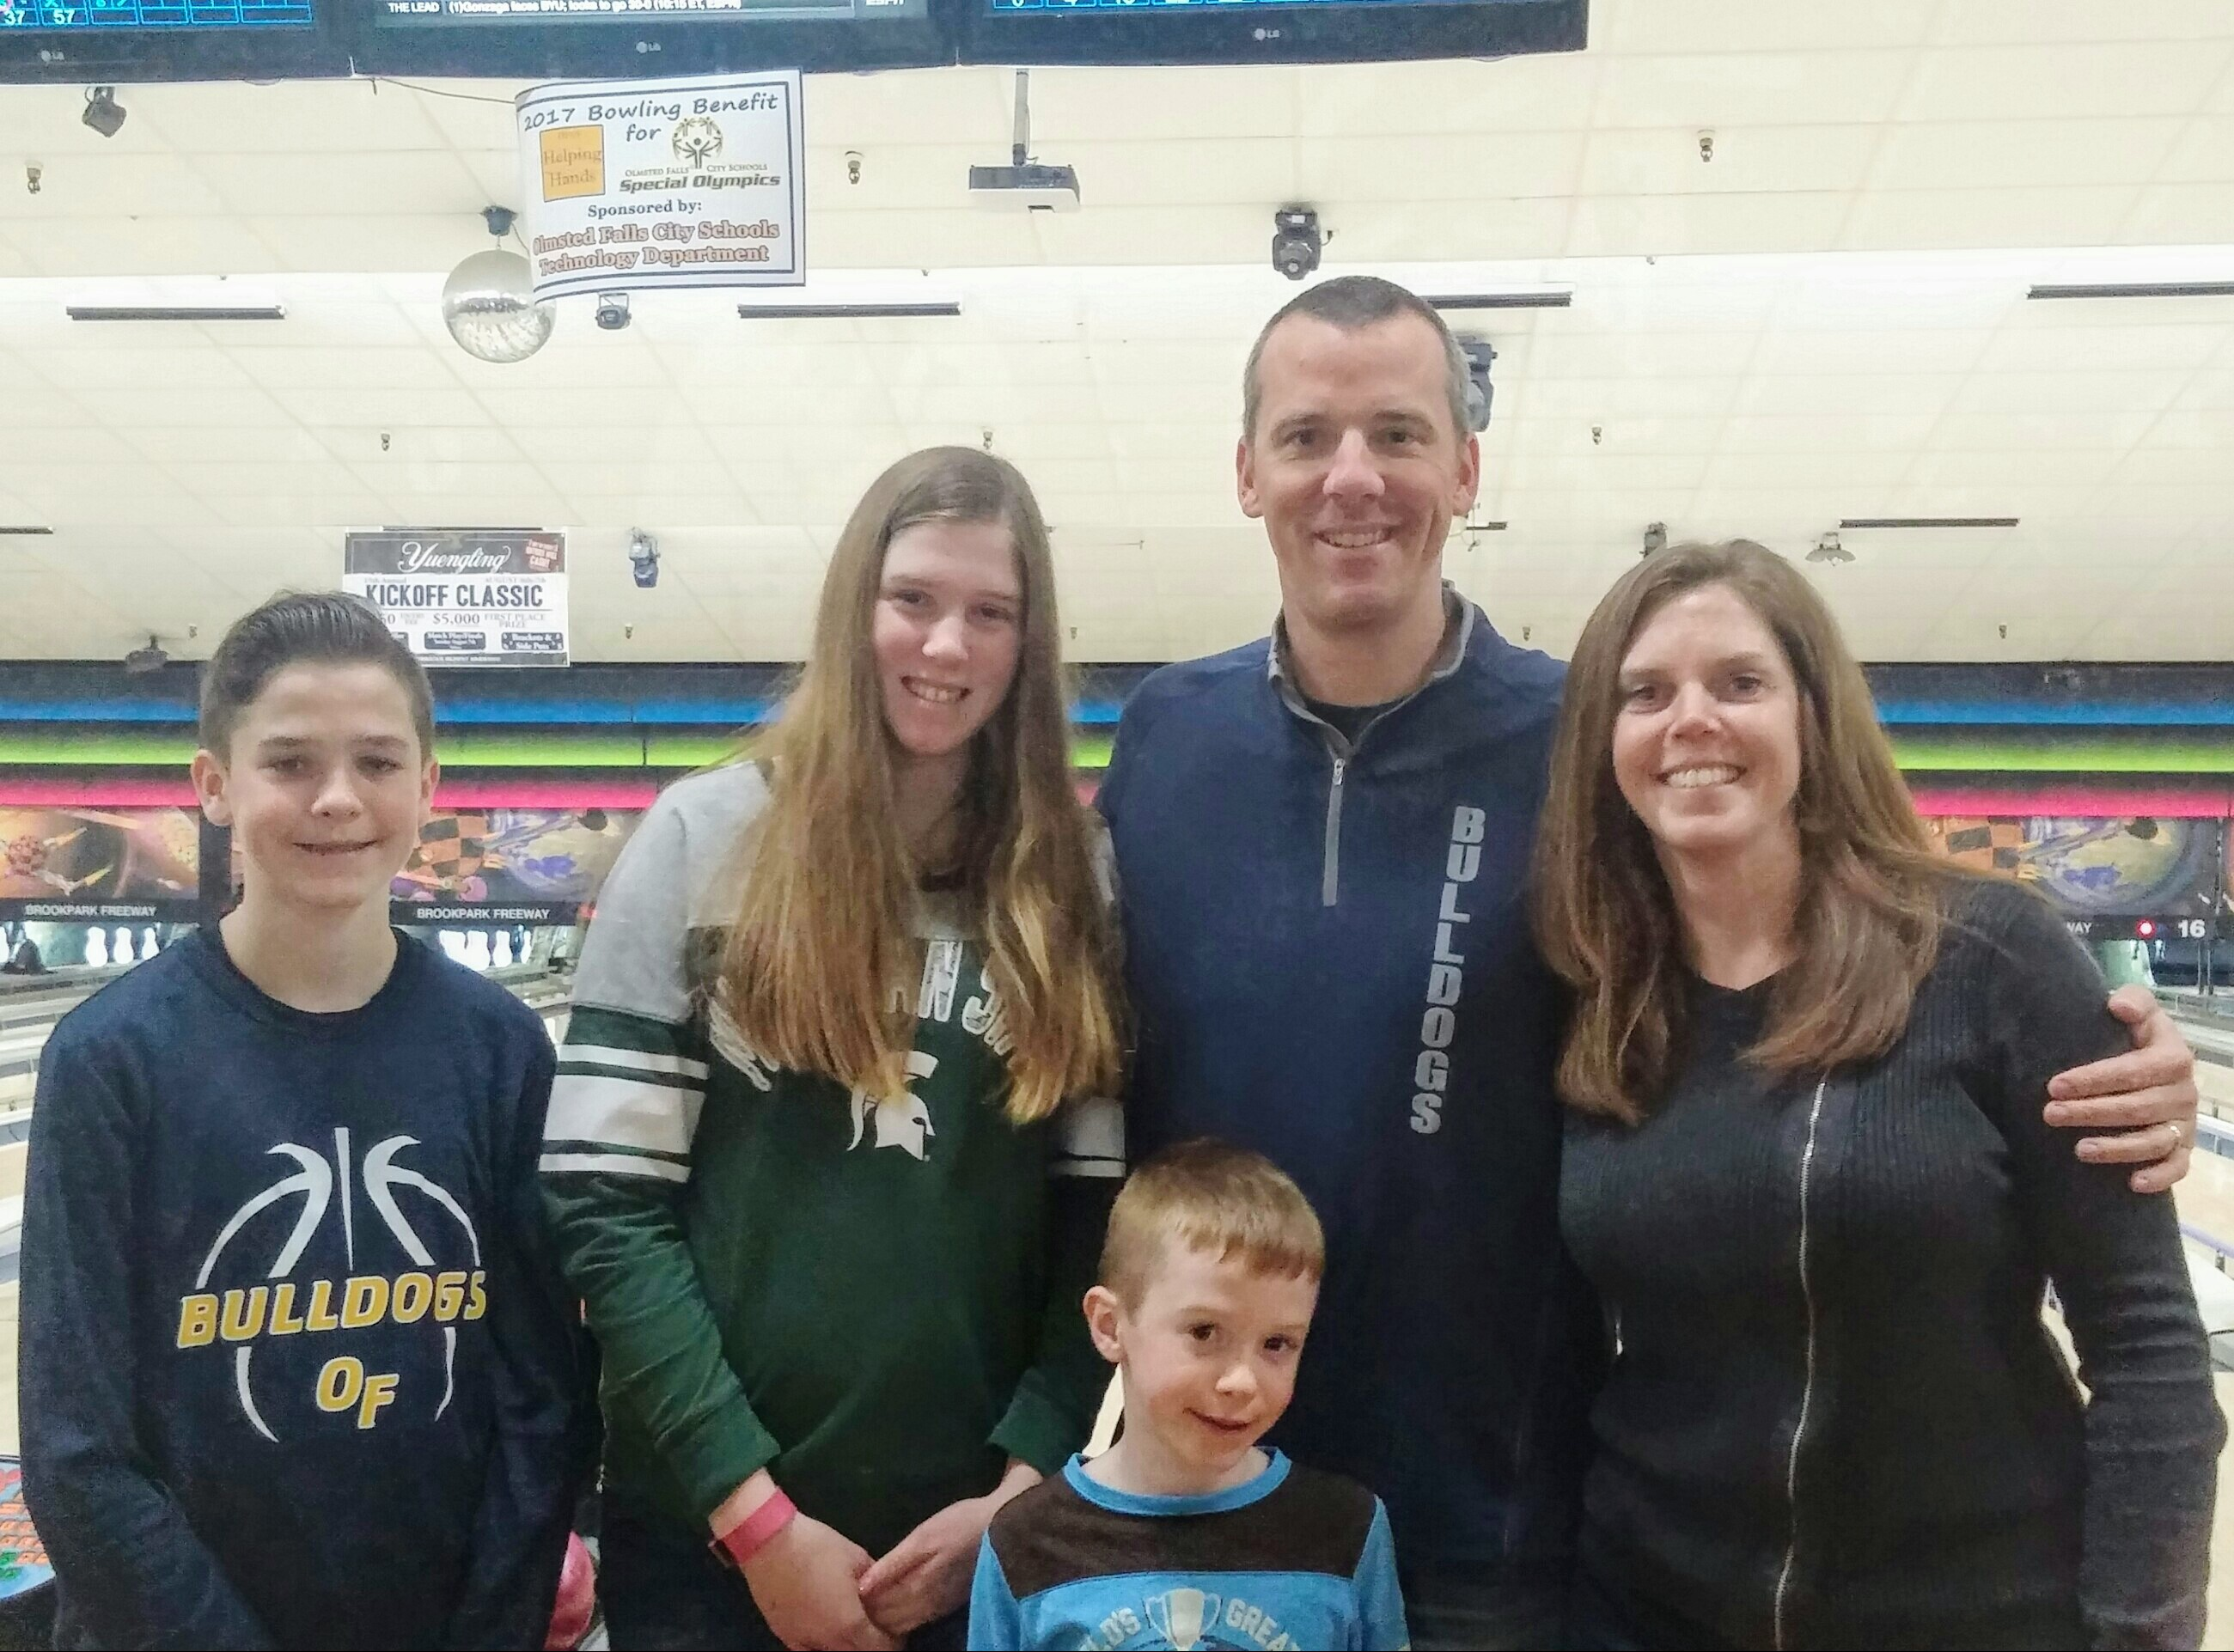 2017 Helping Hands Bowling Benefit